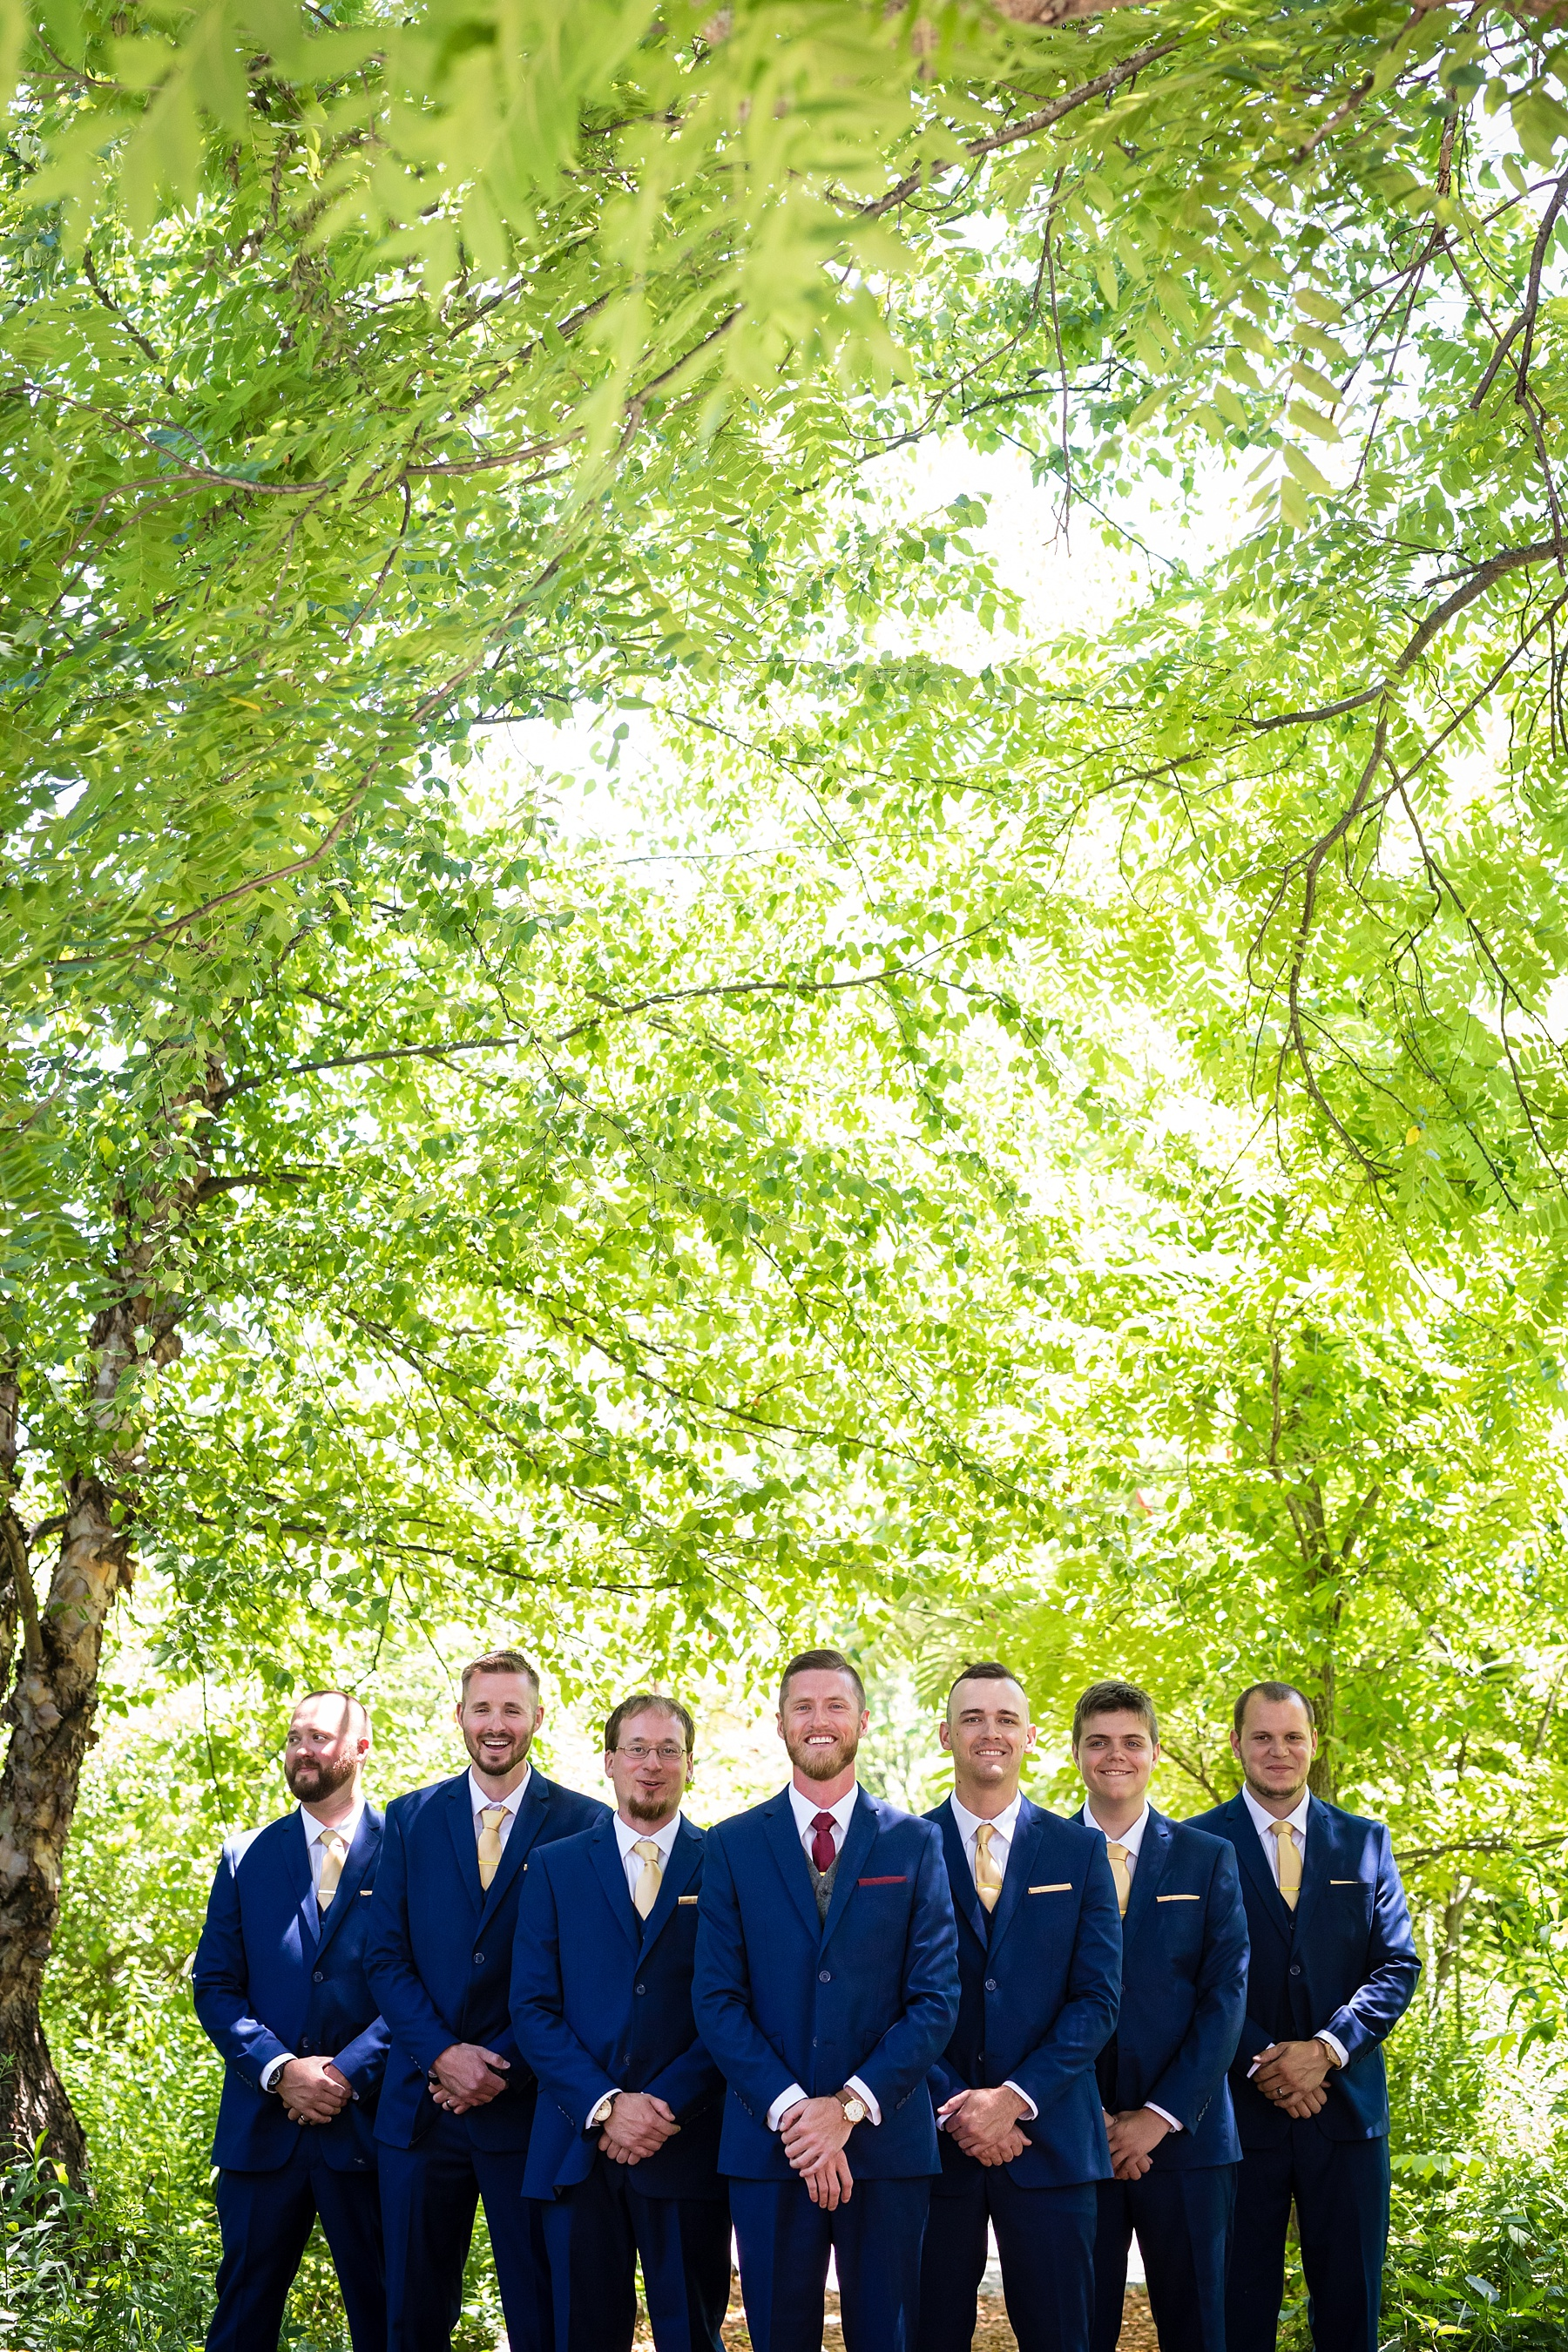 Brandon_Shafer_Photography_Millcreek_Wilde_Barn_Wedding_0015.jpg